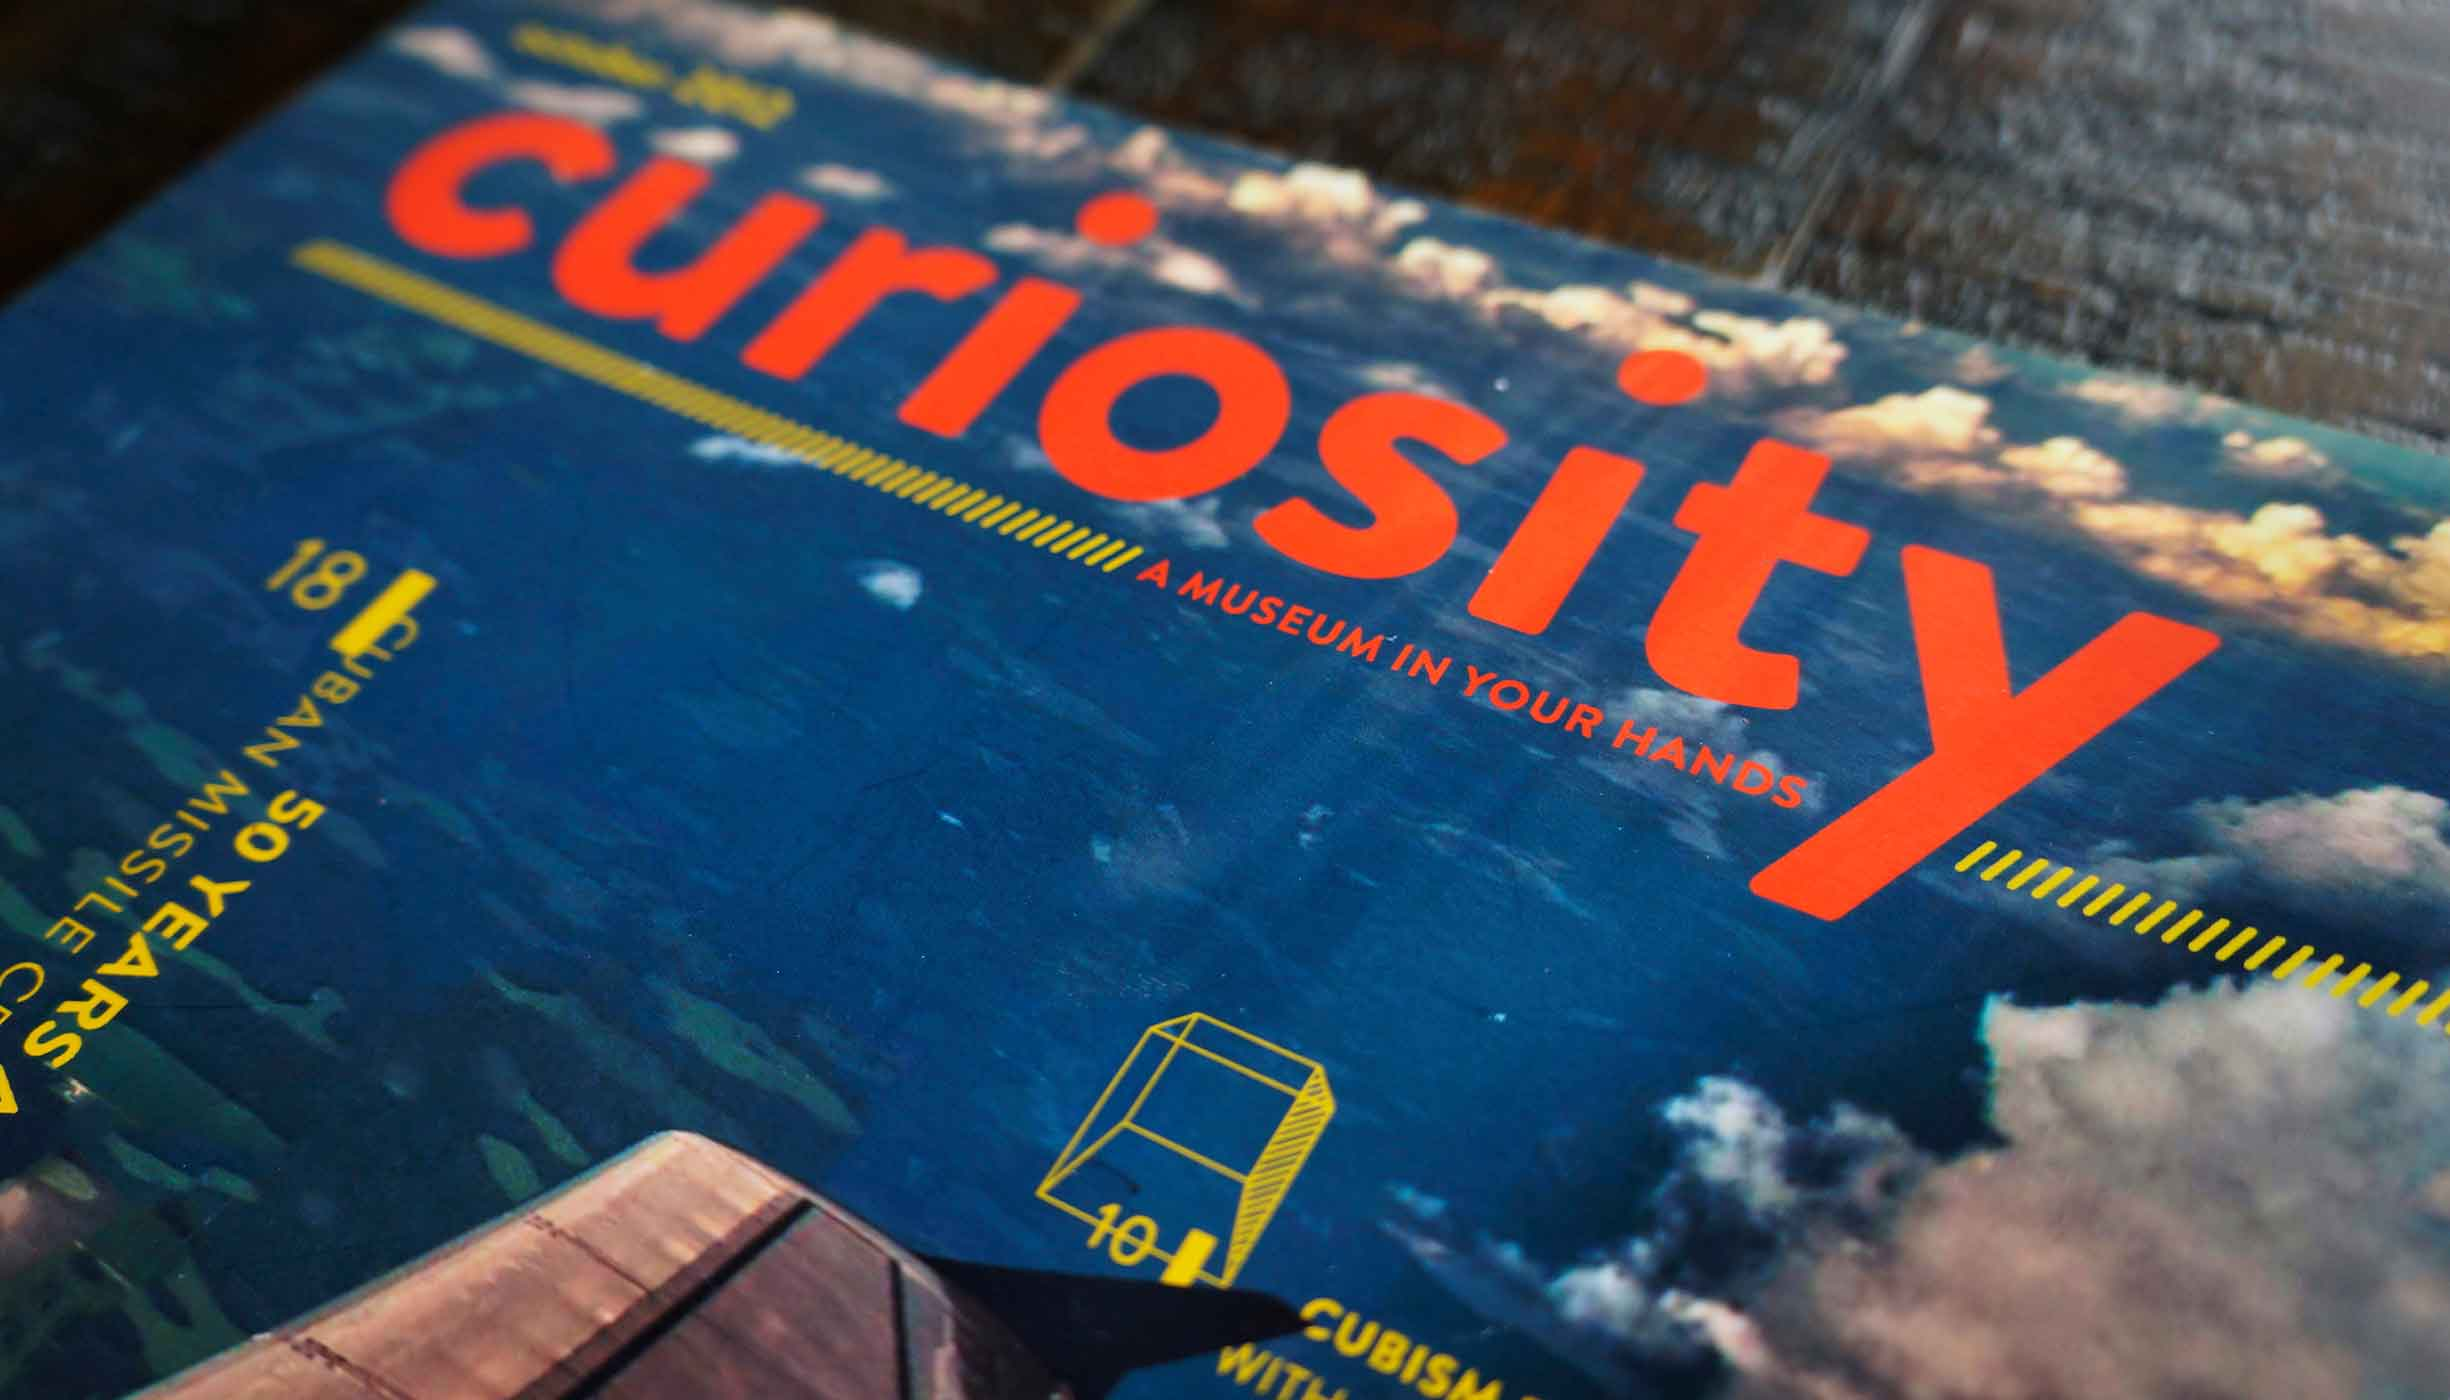 """The cover of Curiosity, featuring its title and tagline, """"A museum in your hands""""."""